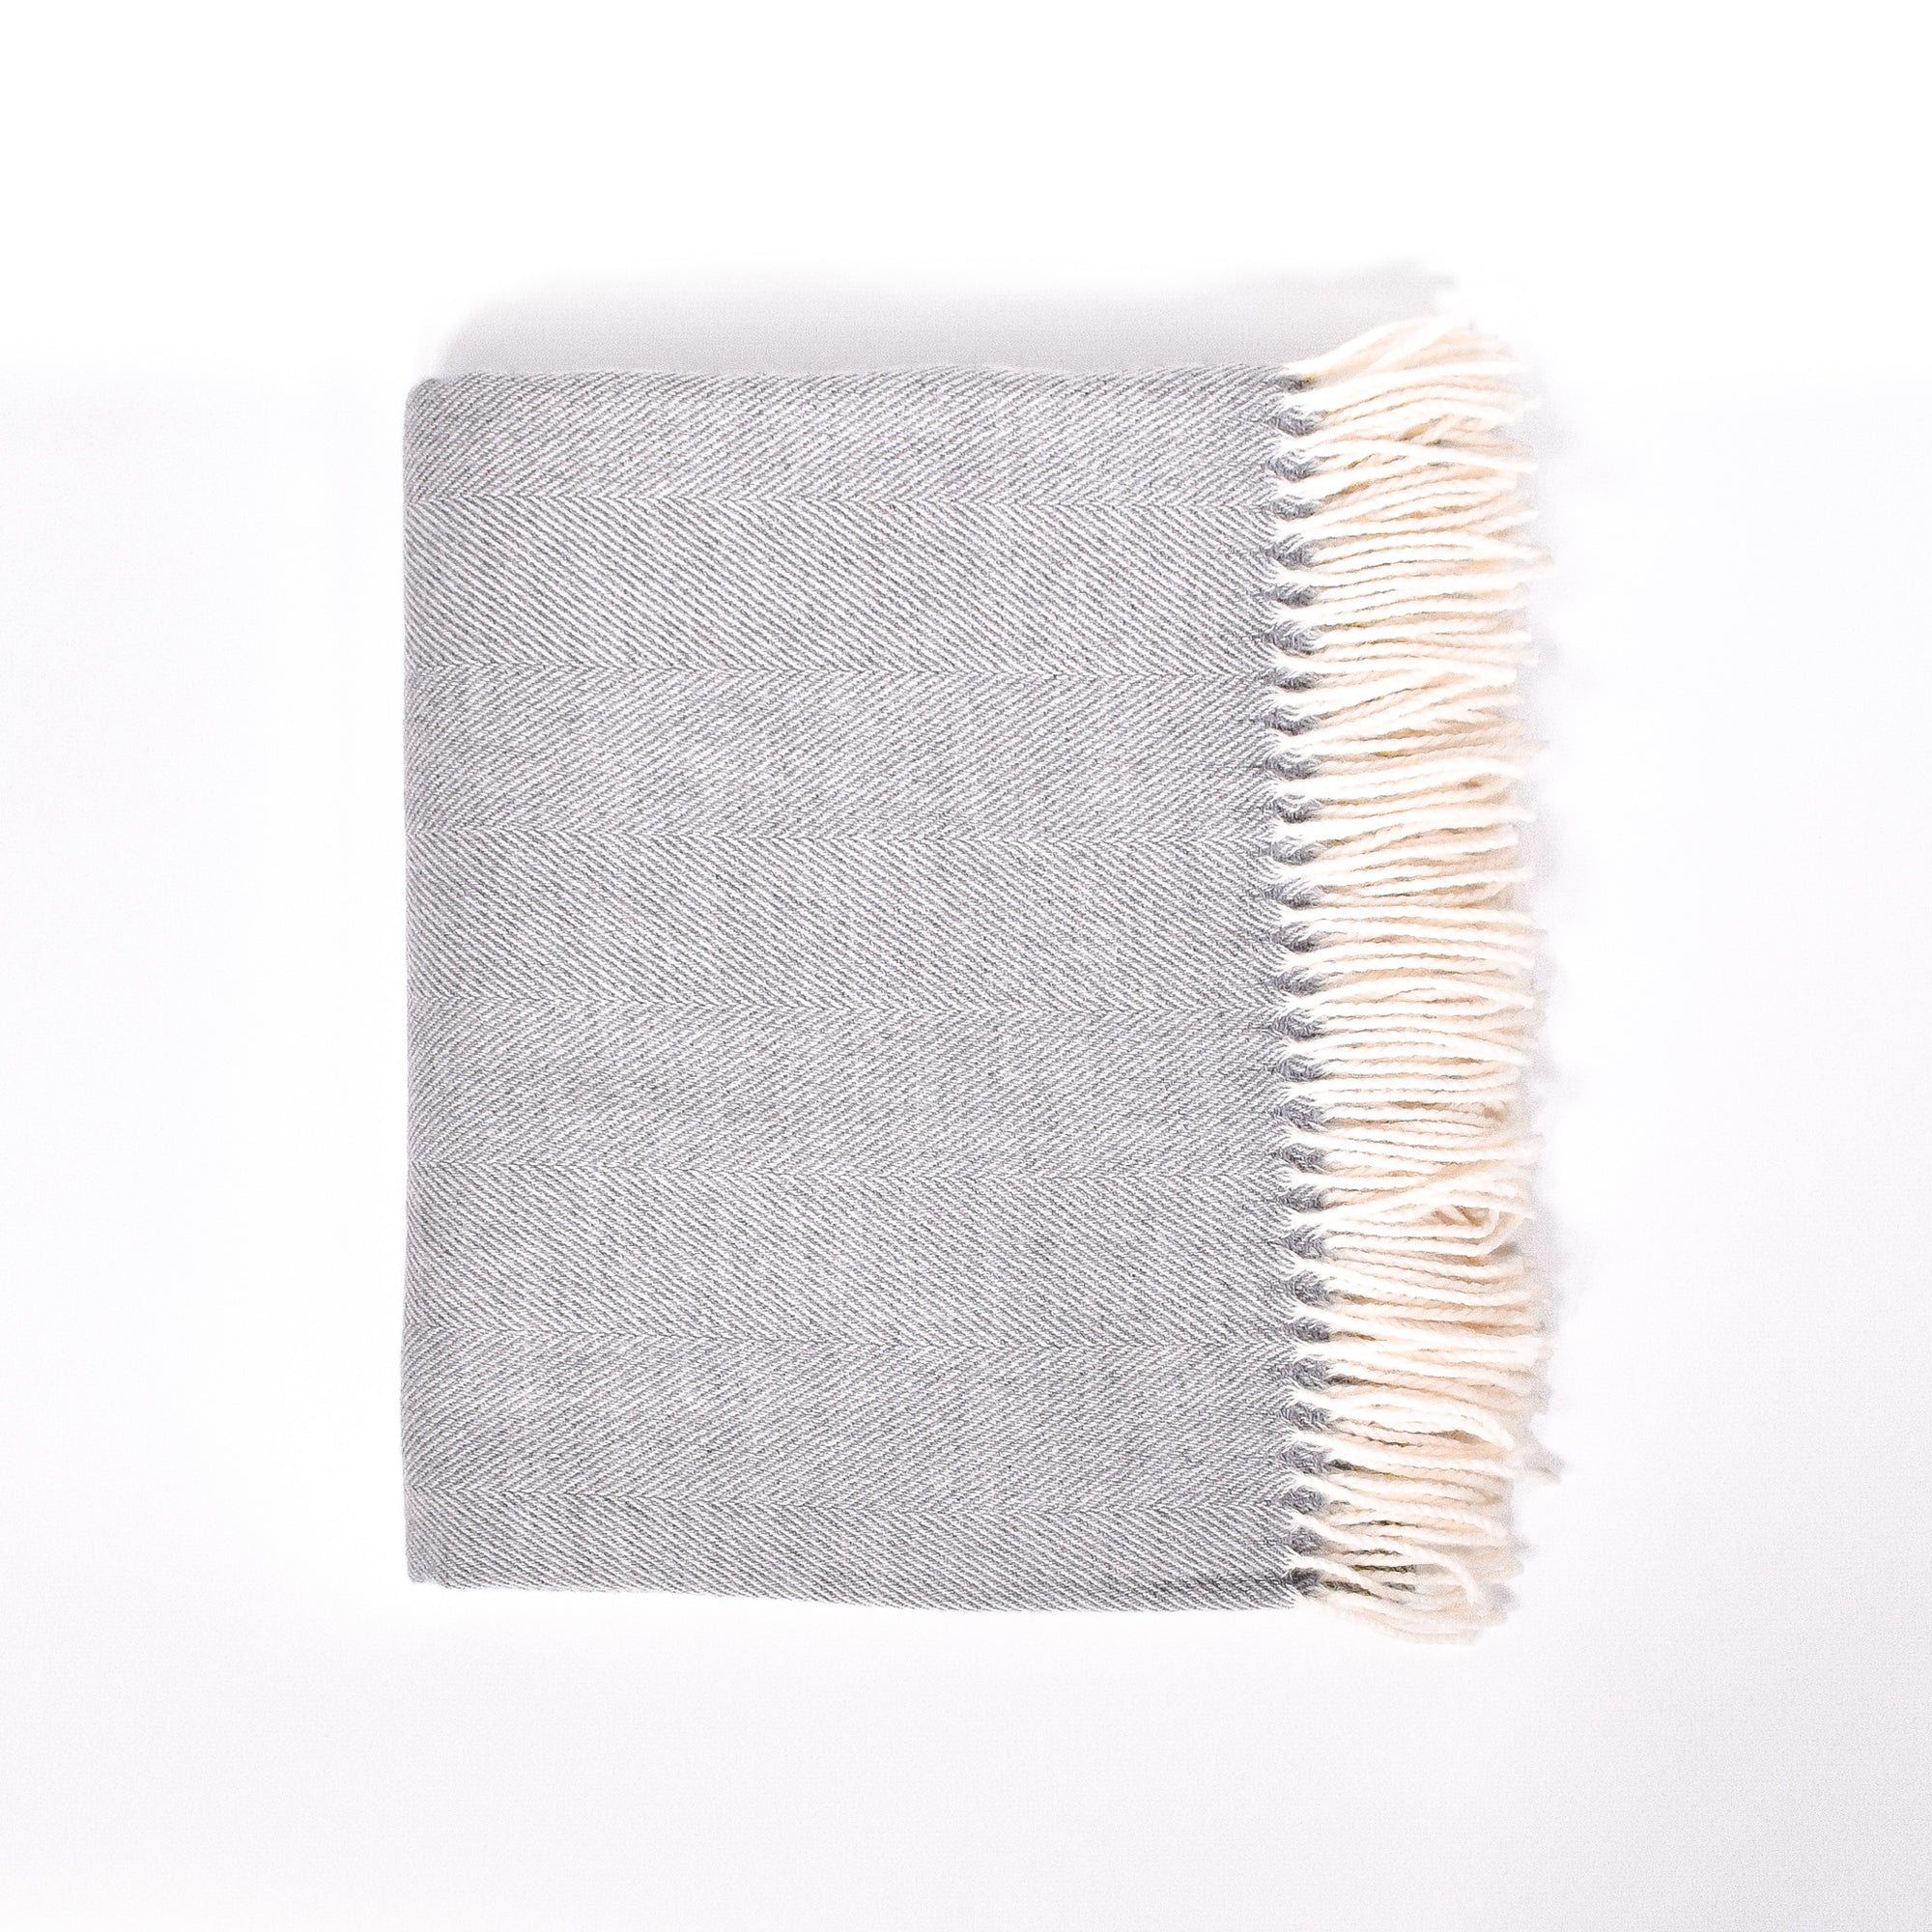 The Cloudy Wool Blanket - Rug & Weave